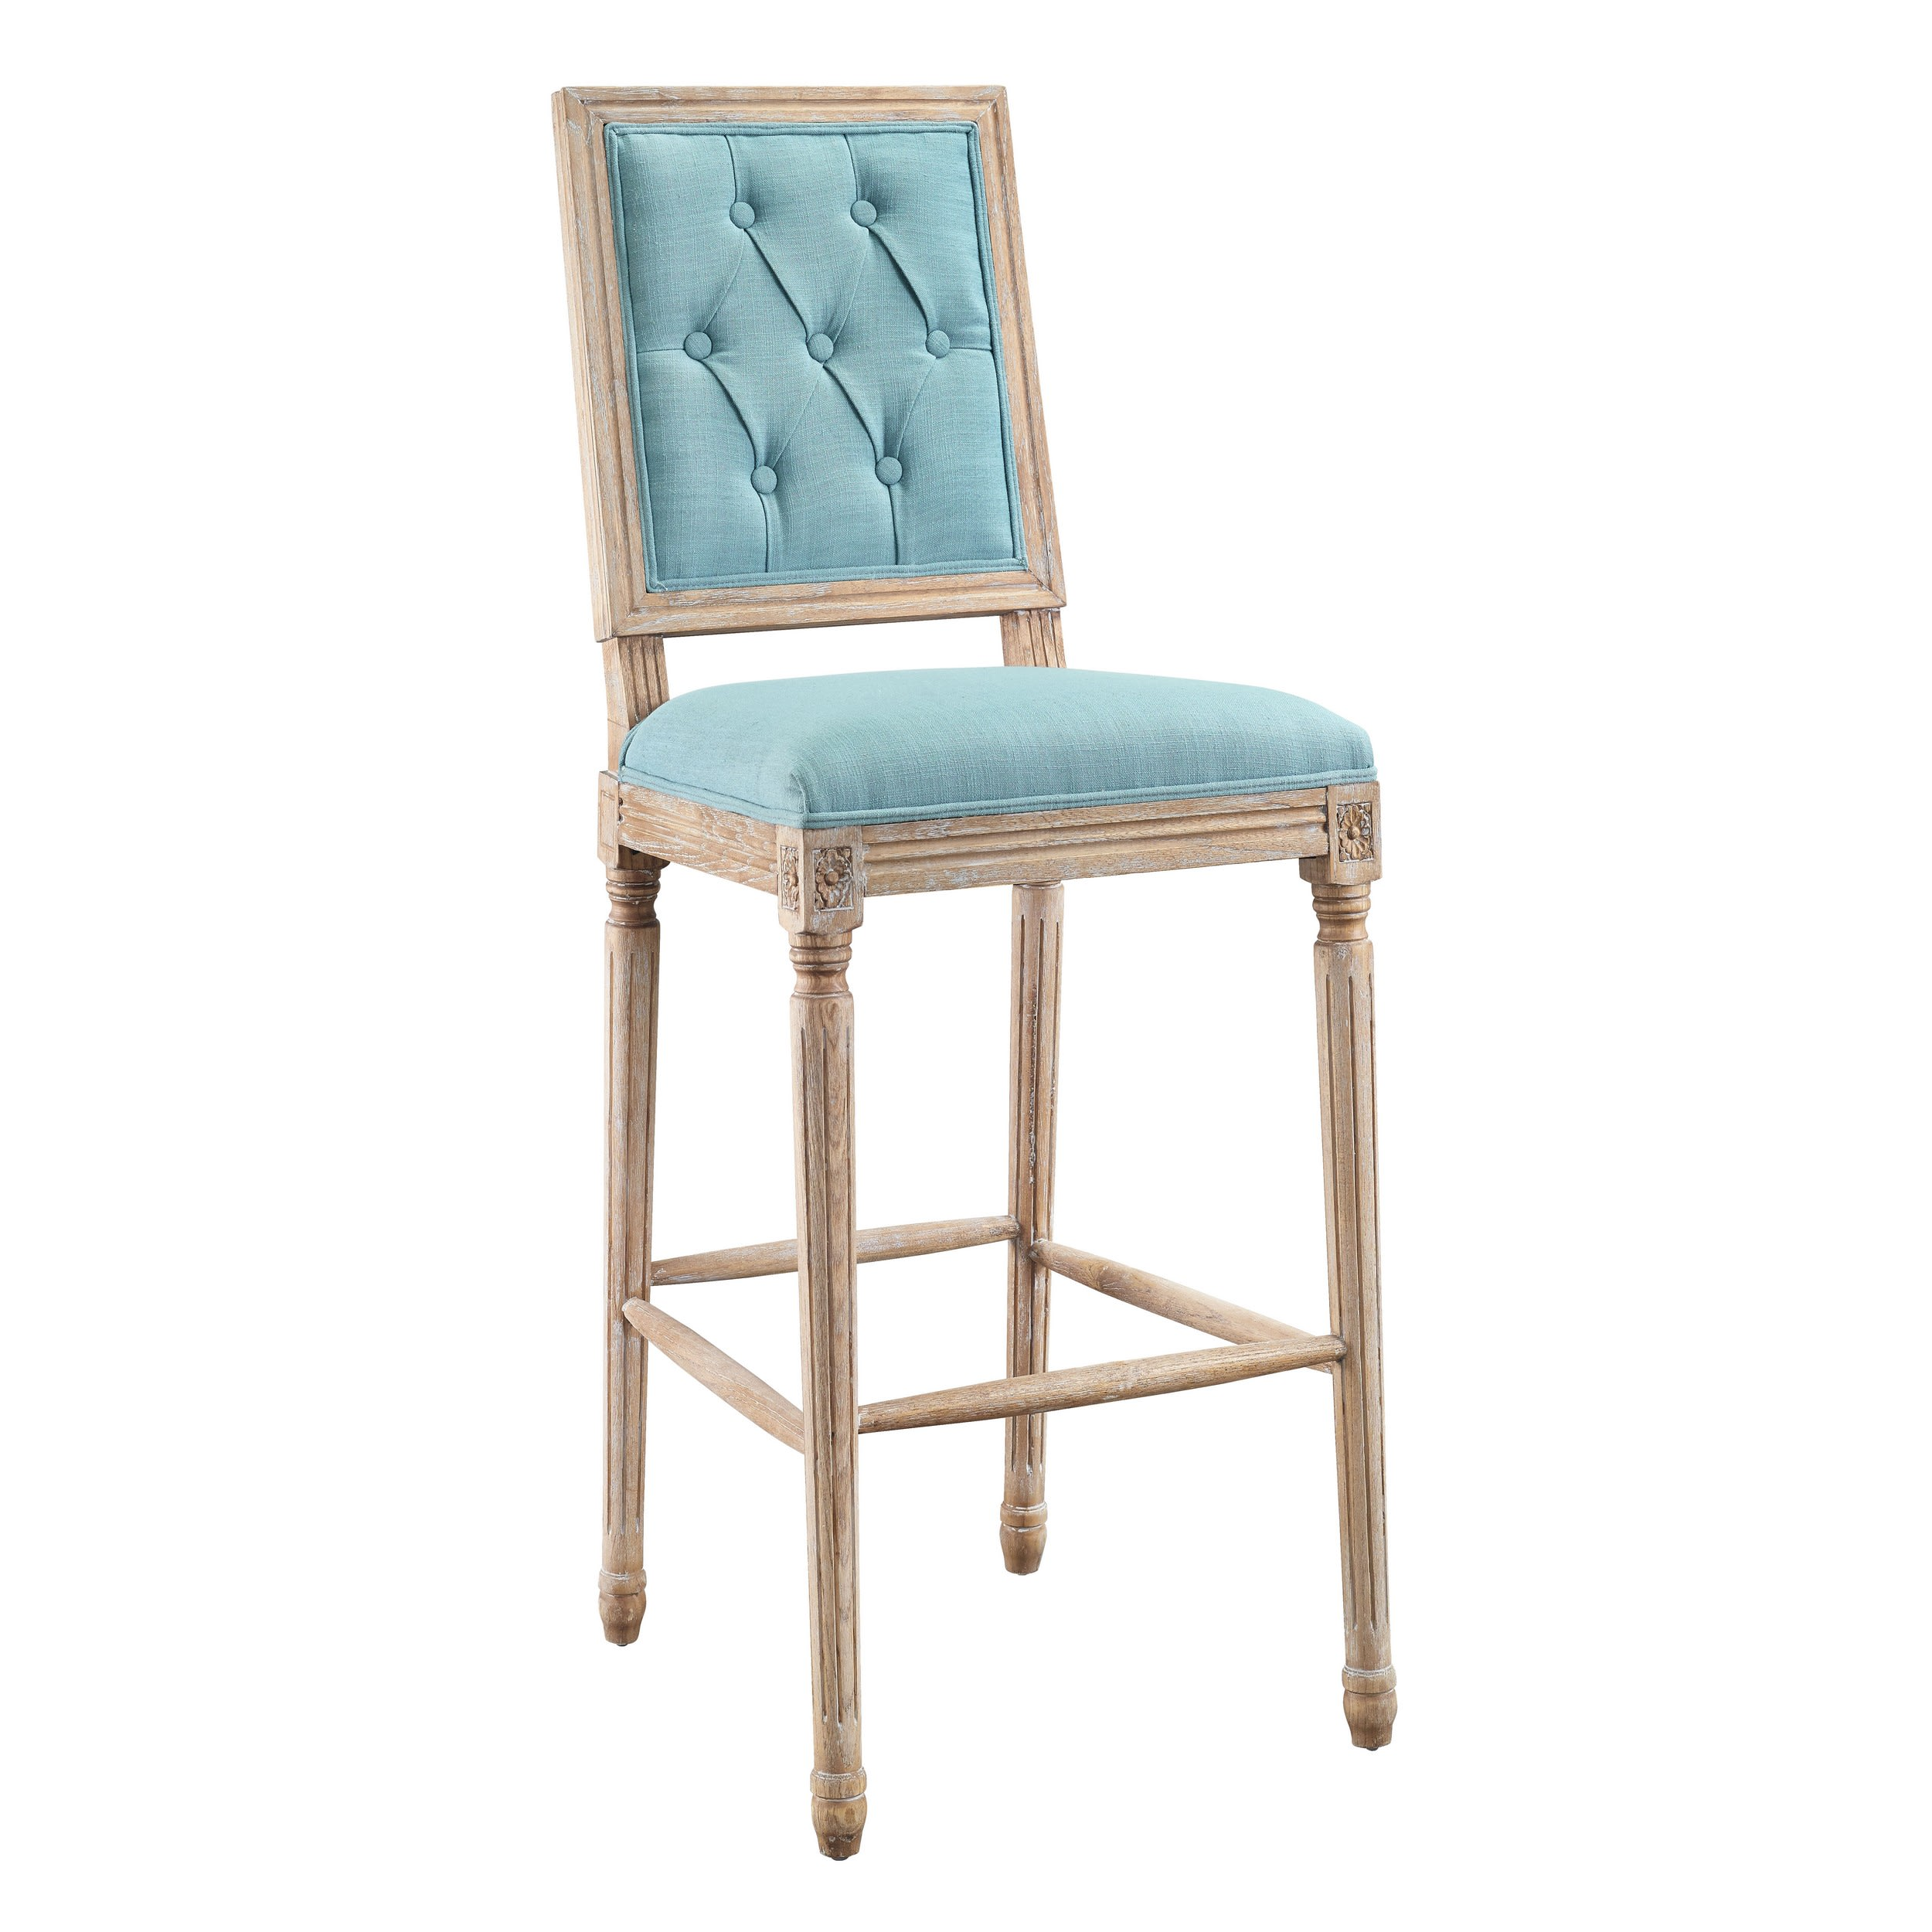 Linon Home Decor Products Inc Avalon Rustic Brown Blue Tufted